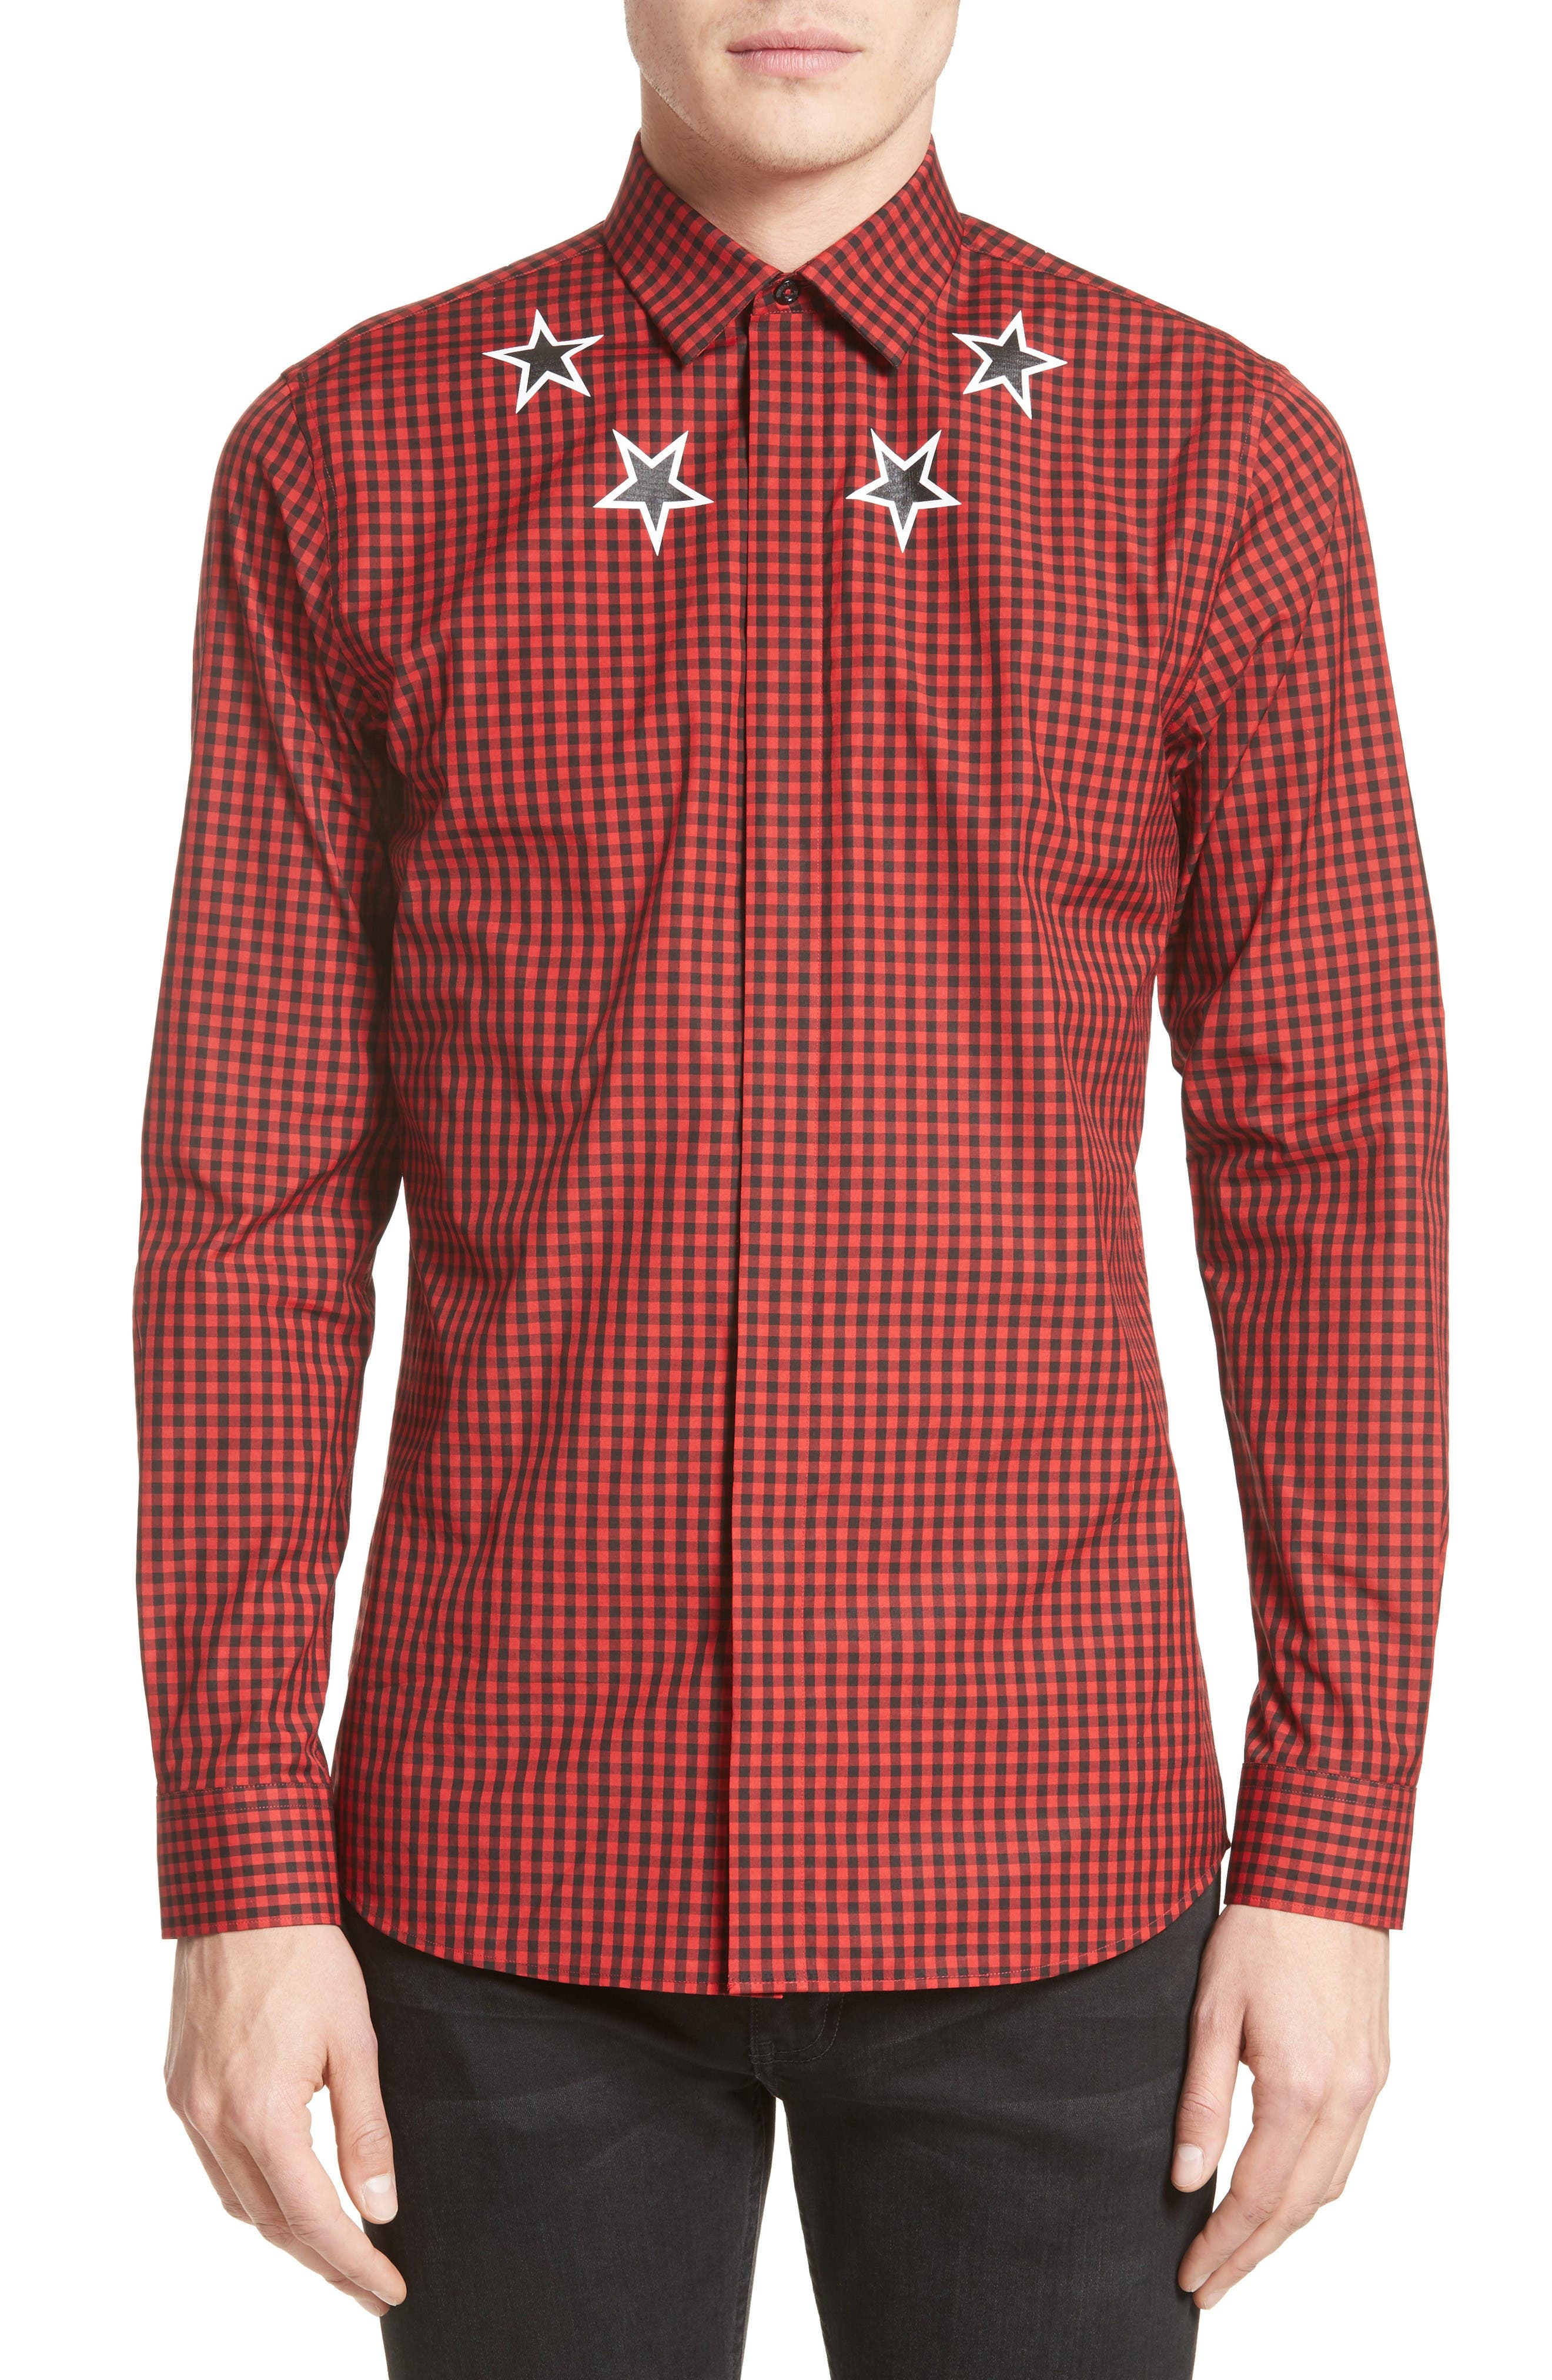 Alternate Image 1 Selected - Givenchy Extra Trim Fit Star Gingham Sport Shirt